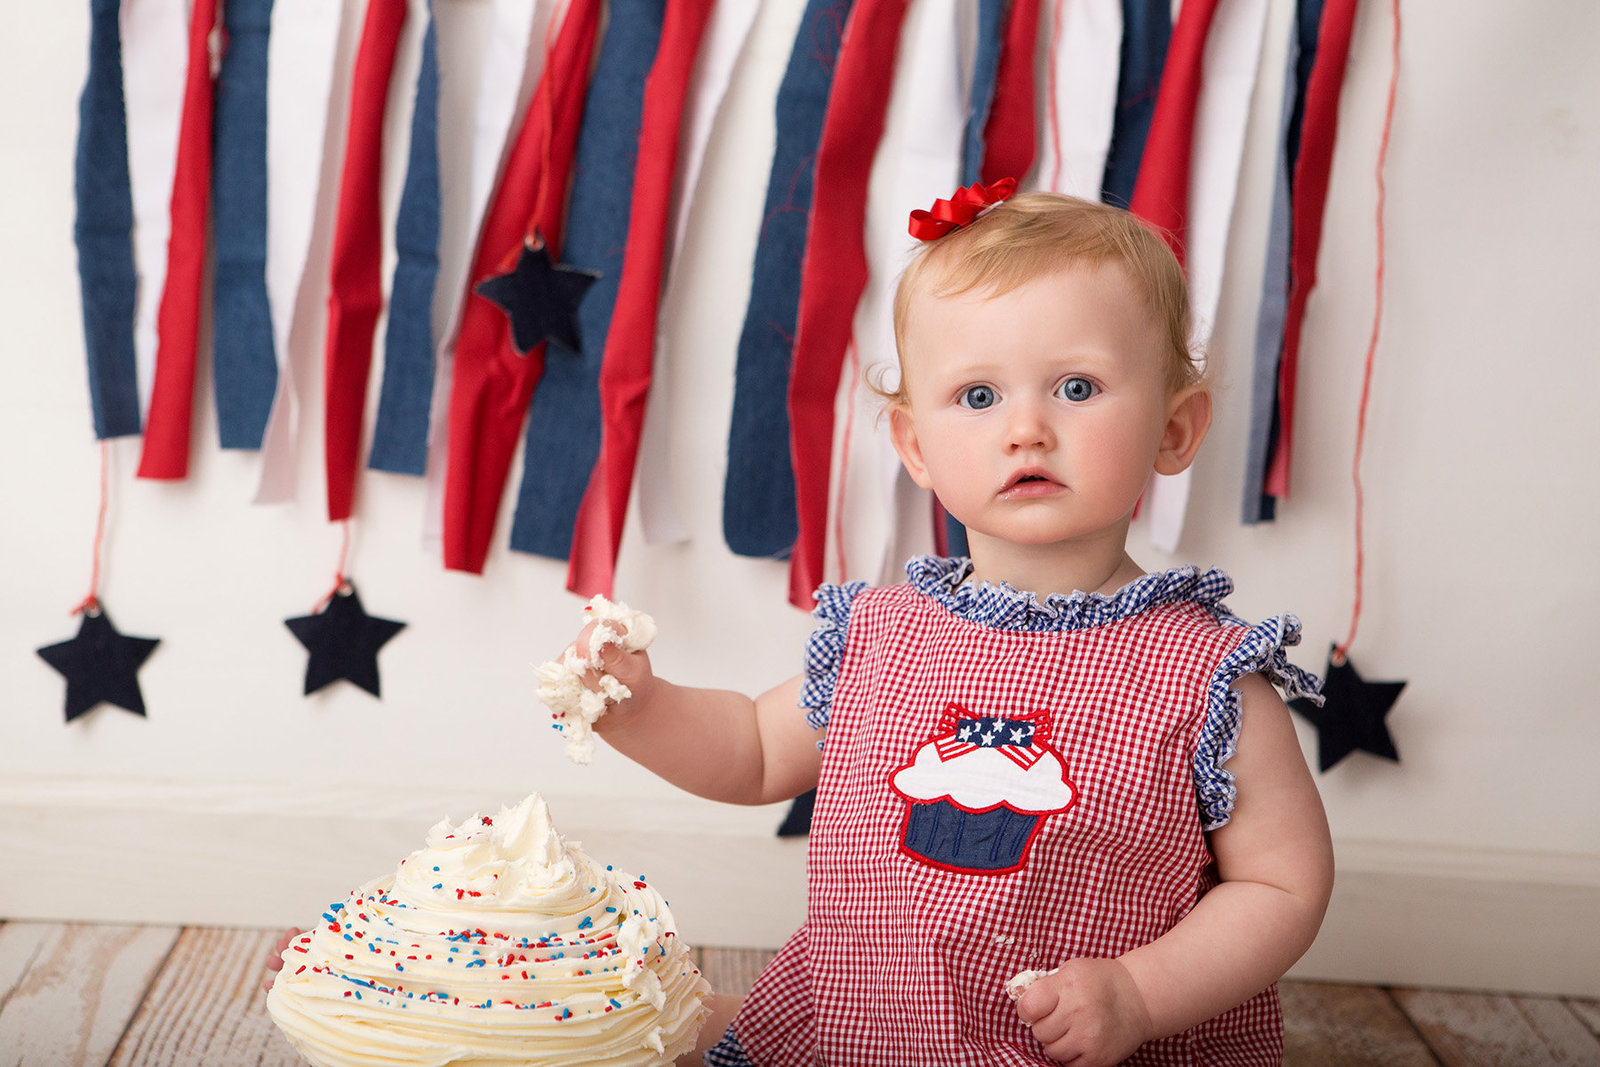 First birthday cake smash pictures by Hudson Valley professional photographer in Cornwall NY photography studio